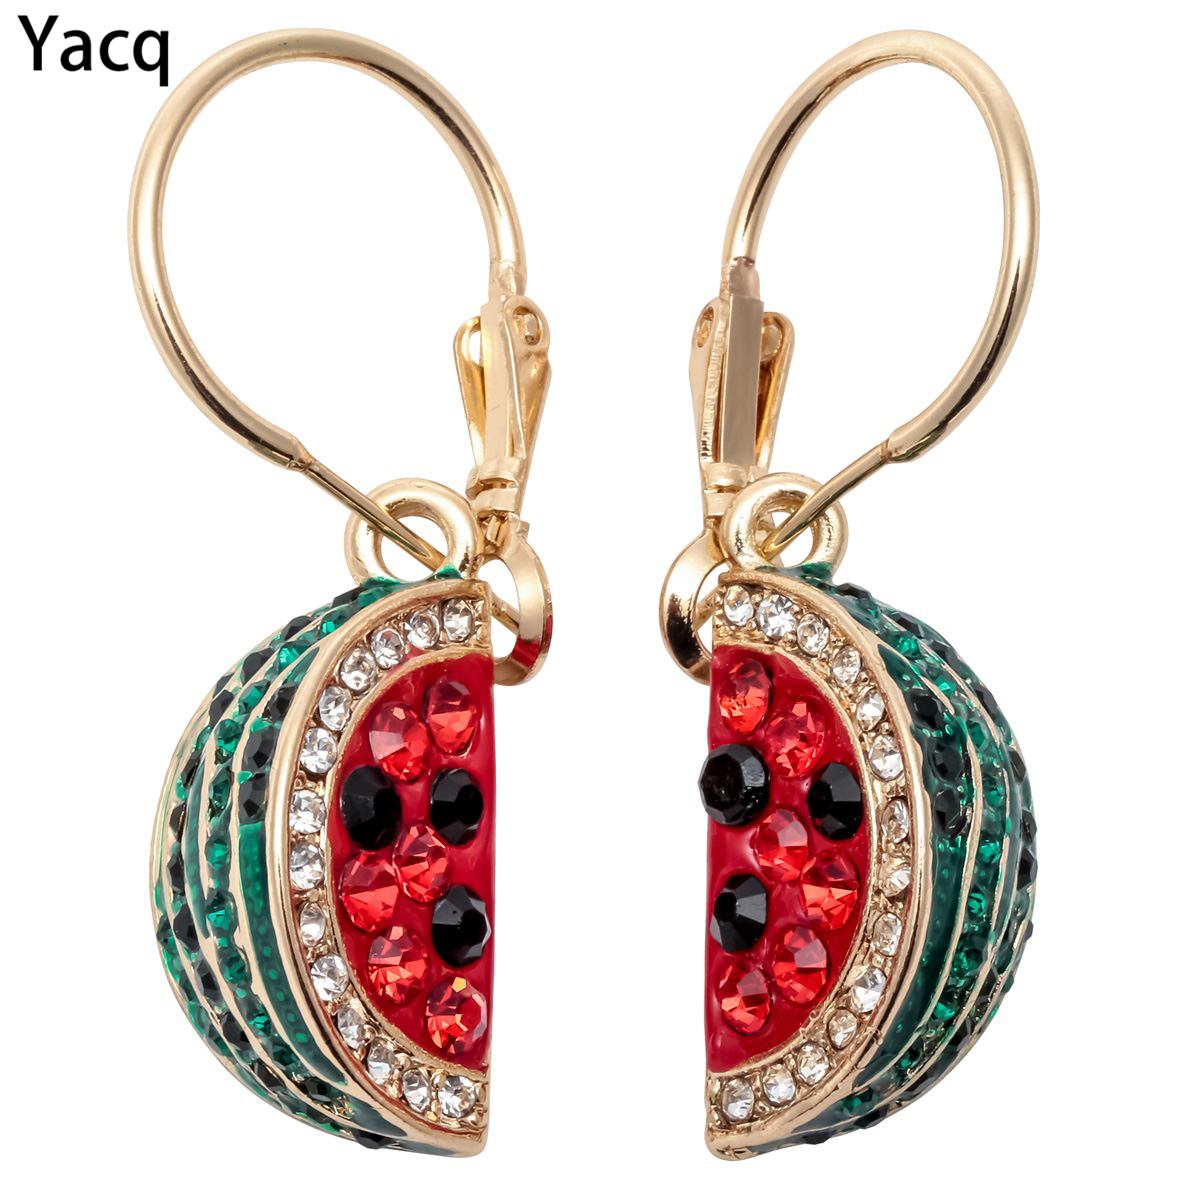 YACQ Watermelon Dangle Drop Earrings Women Girls Fashion Jewelry Gifts Mom Crystal Charm Gold Silver Plated ED01 Dropshipping yoursfs leverback earrings 18k white rose gold plated fashion jewelry women square crystal dangle drop earrings